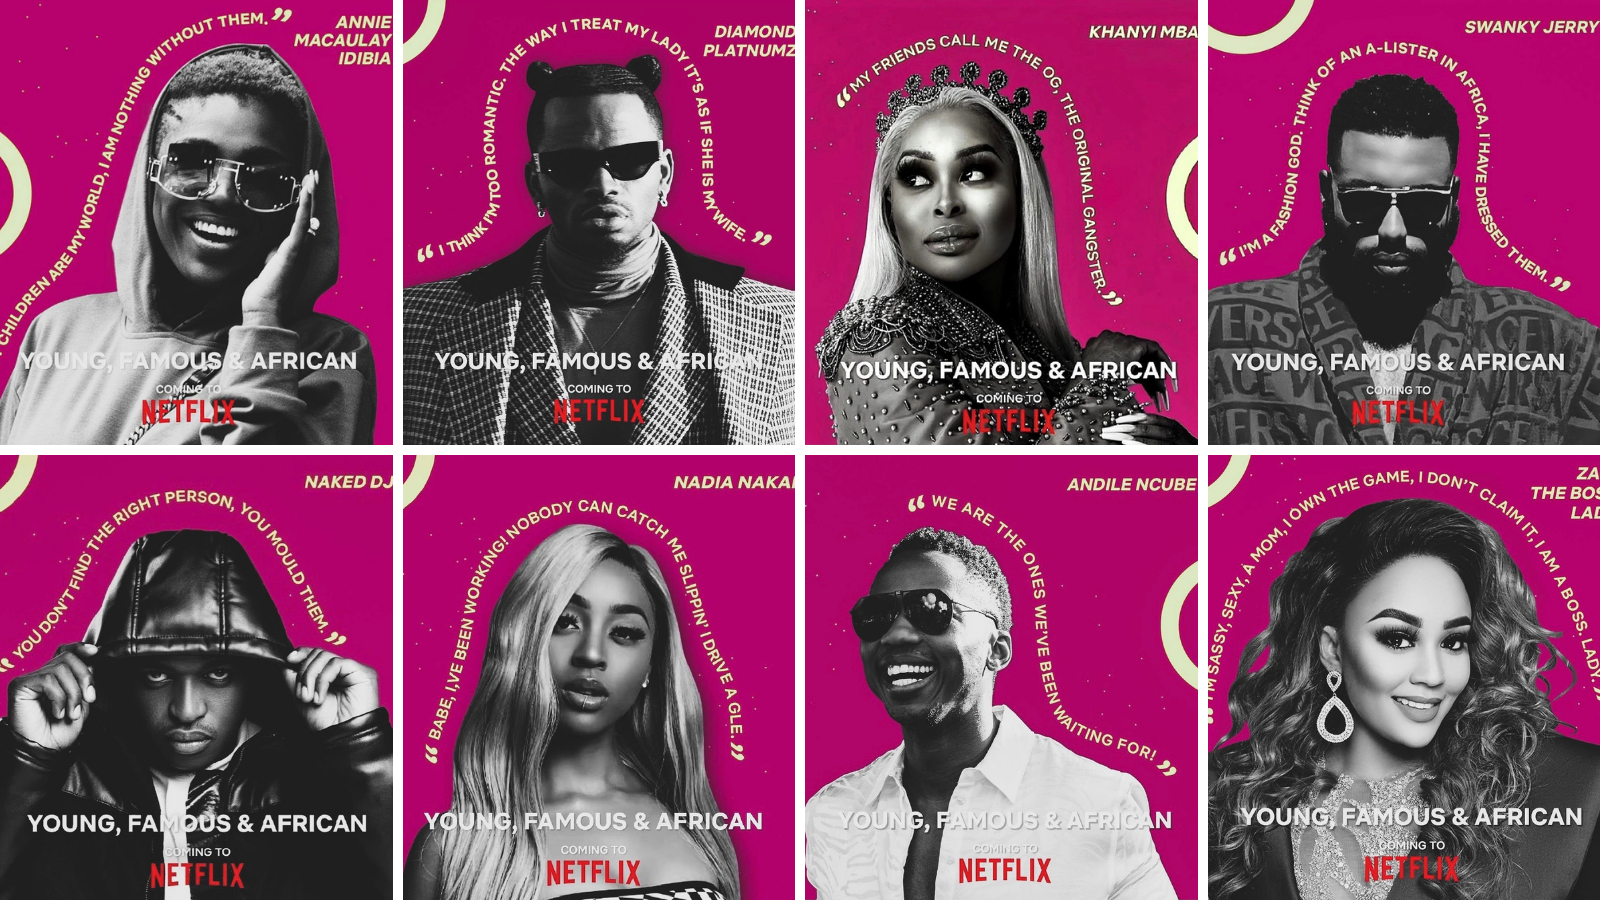 'Young, Famous and African': Peace Hyde to produce Netflix's reality series starring Annie Idibia, Swanky Jerry, others